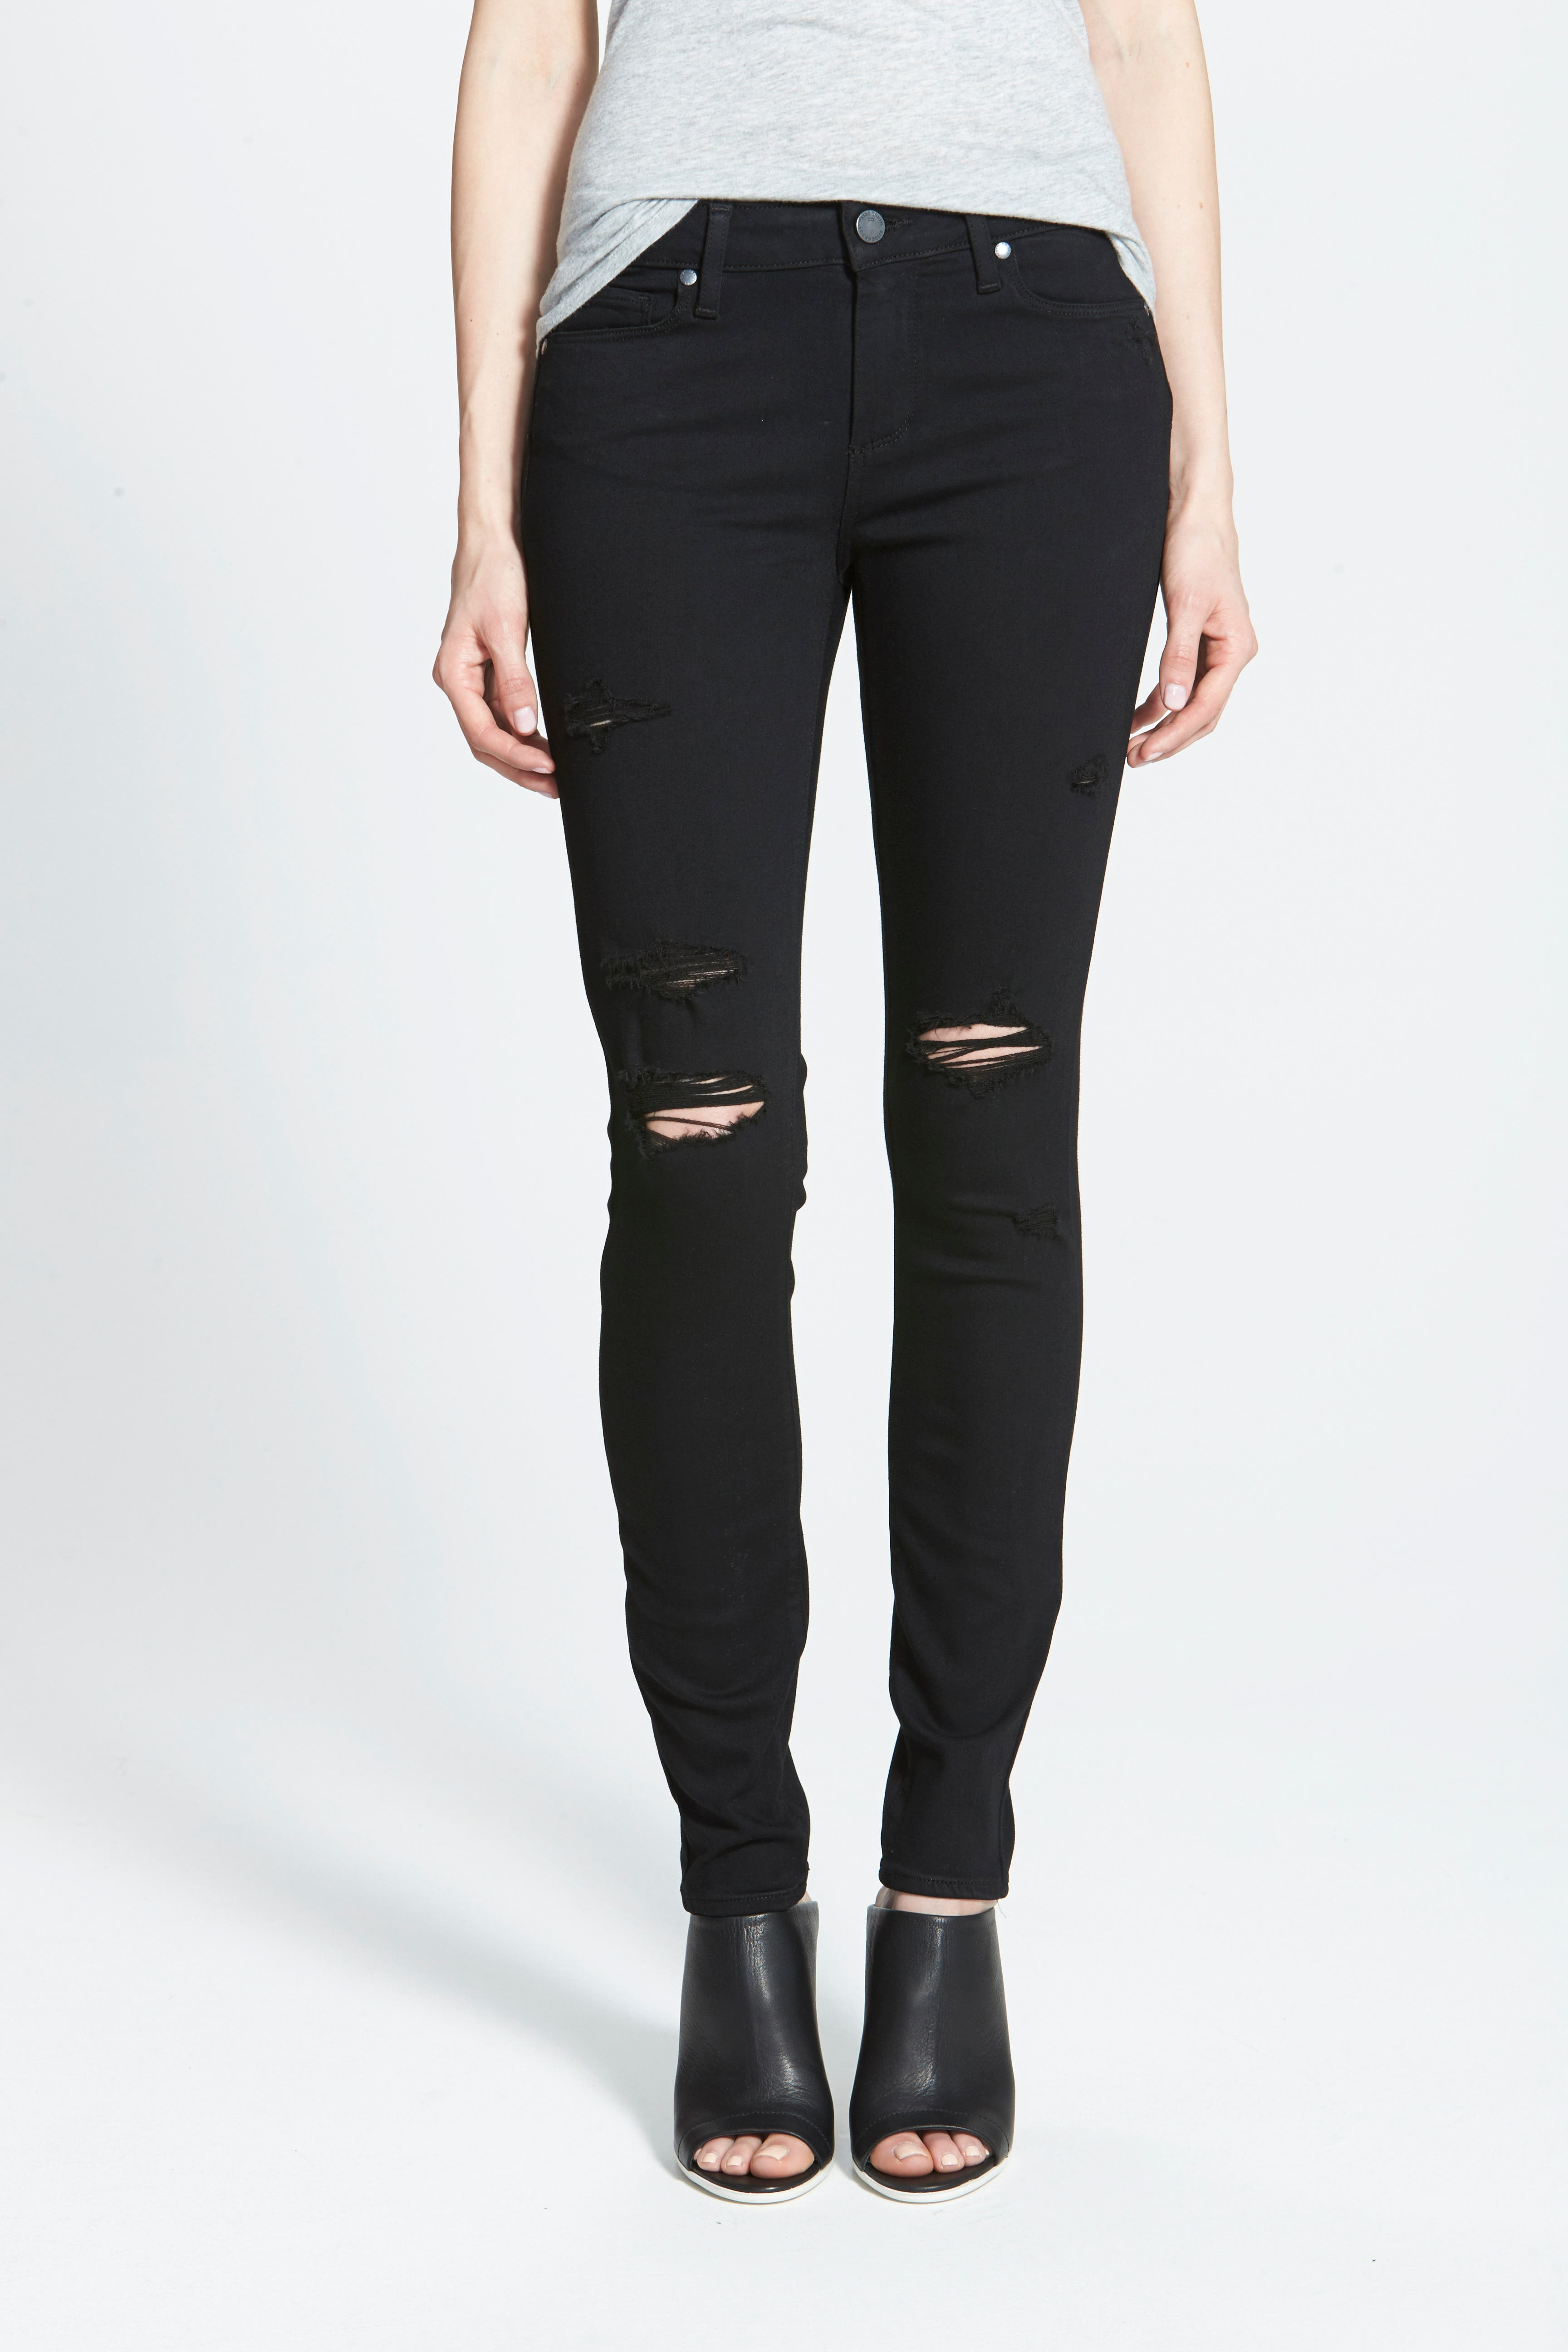 PAIGE, Transcend - Verdugo Ultra Skinny Jeans, Main thumbnail 1, color, 001